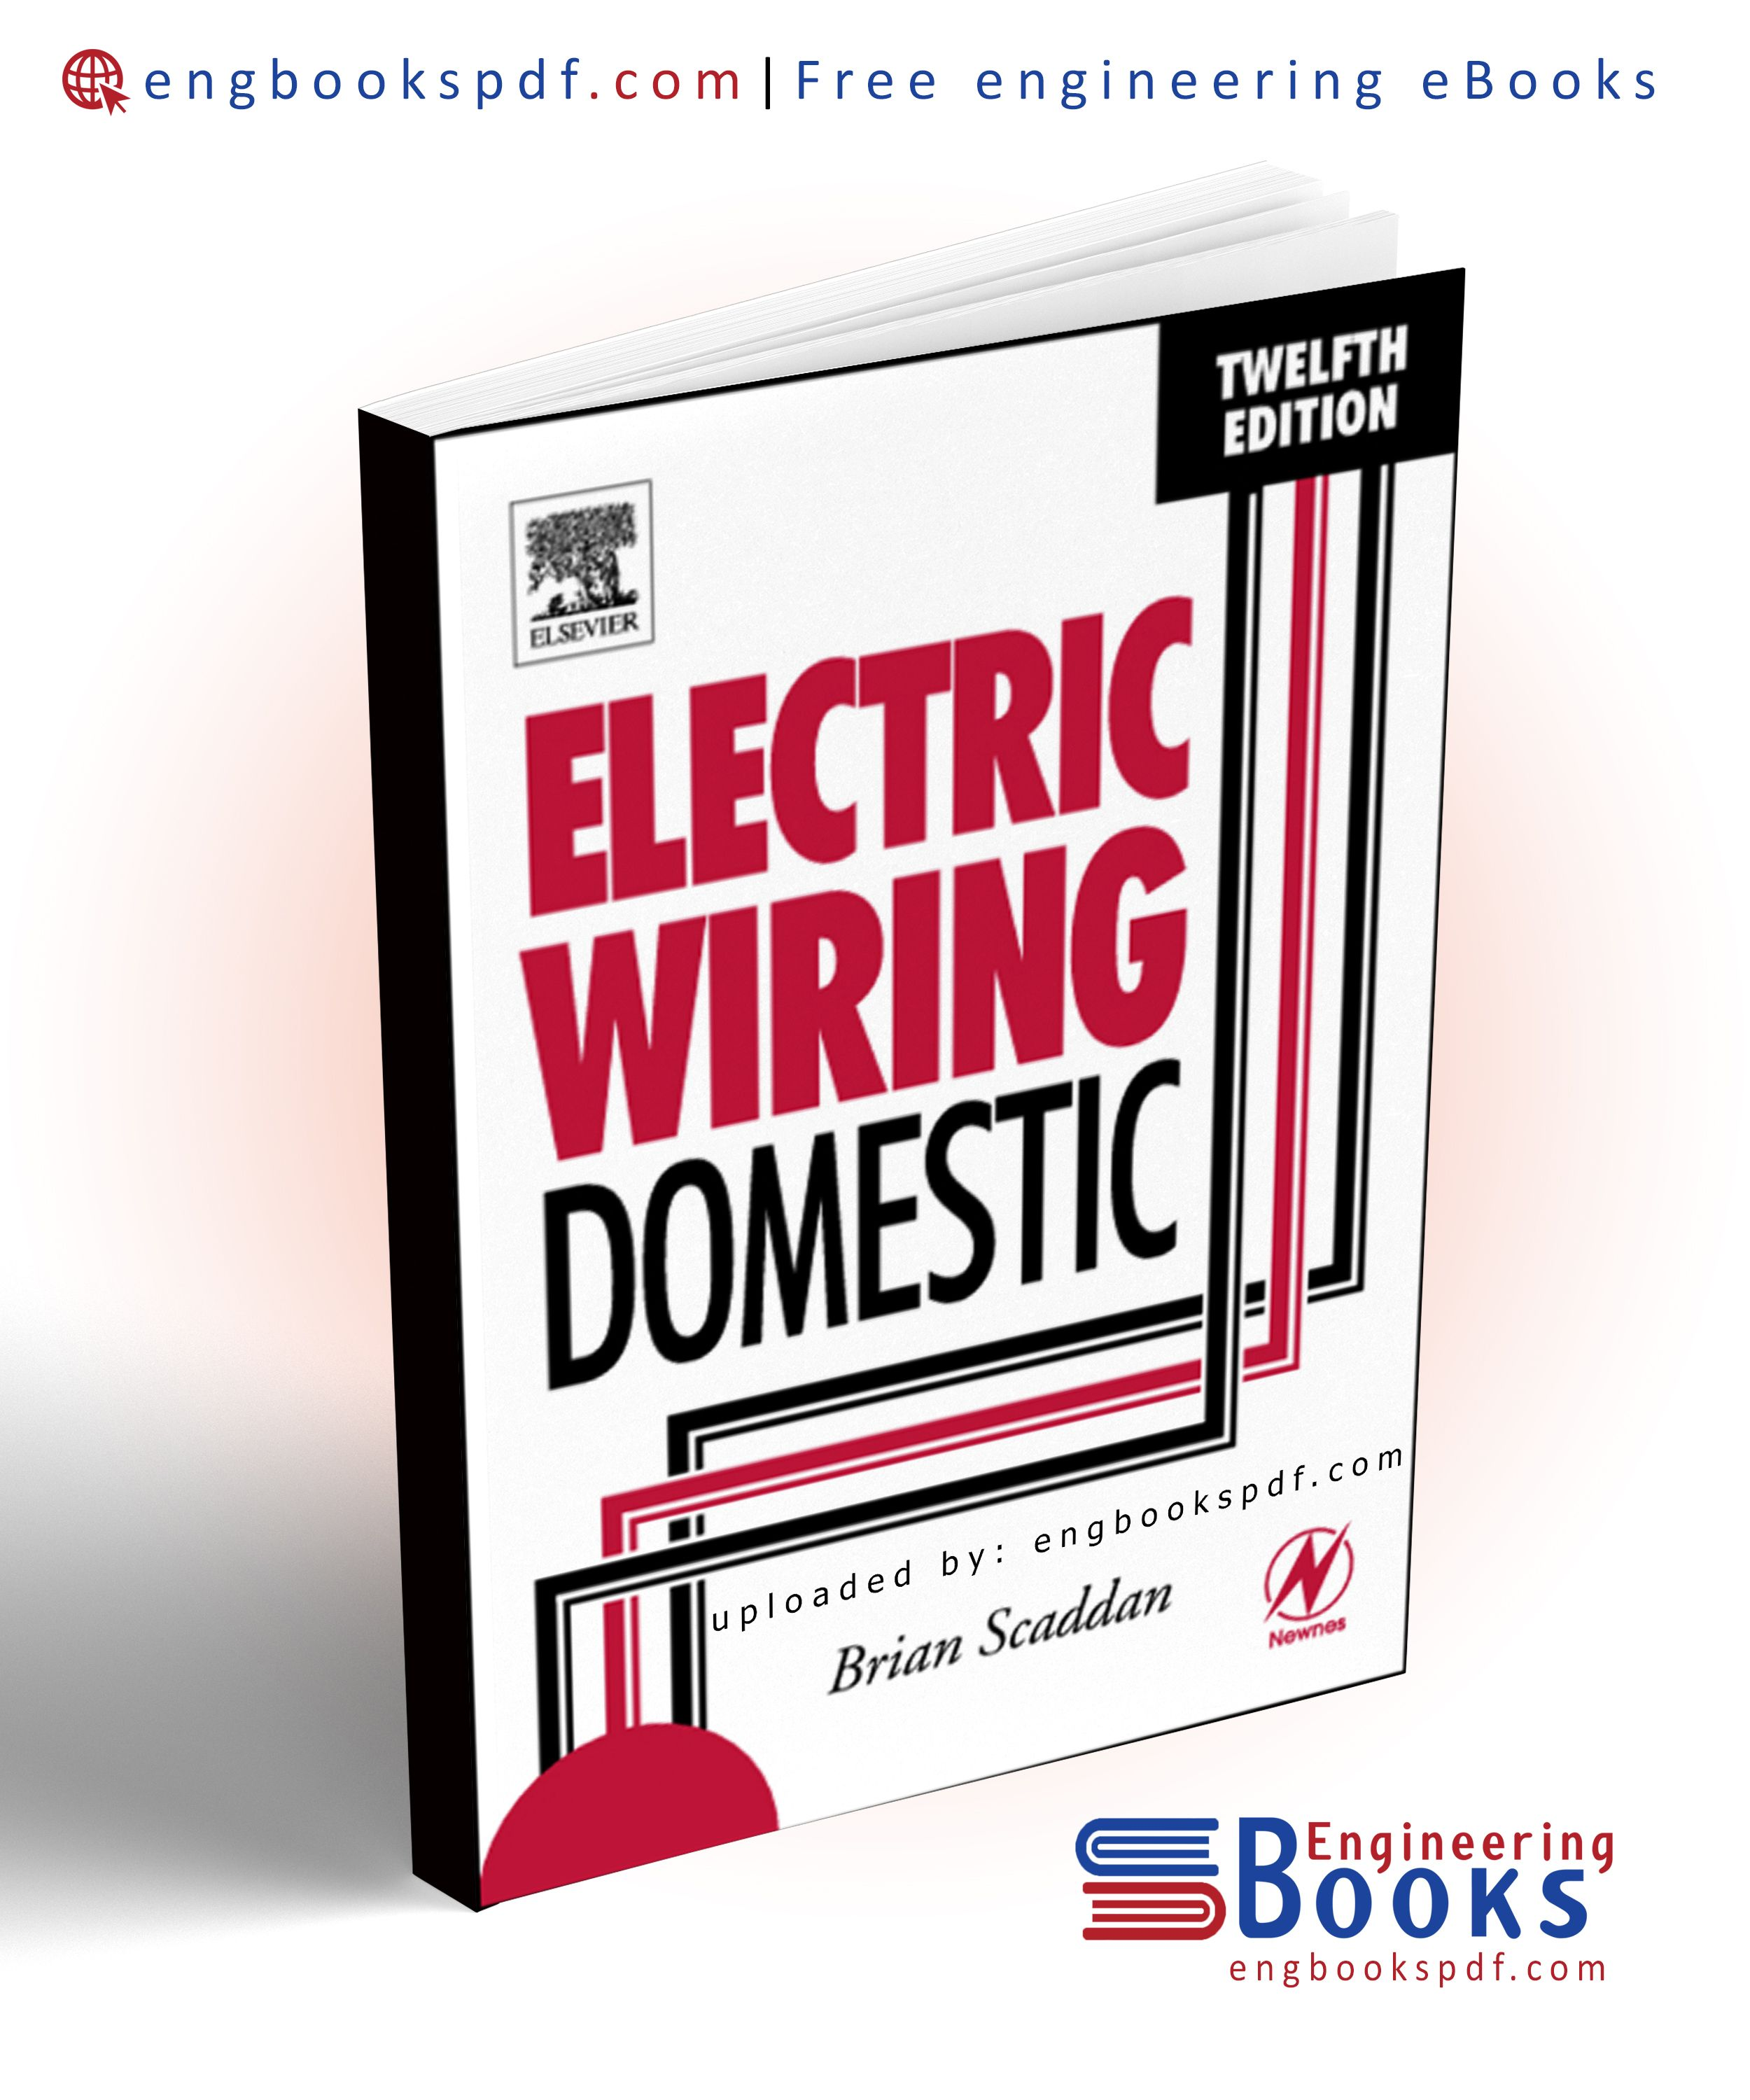 Get Pdf Of Electric Wiring Domestic By B  Scaddan For Free